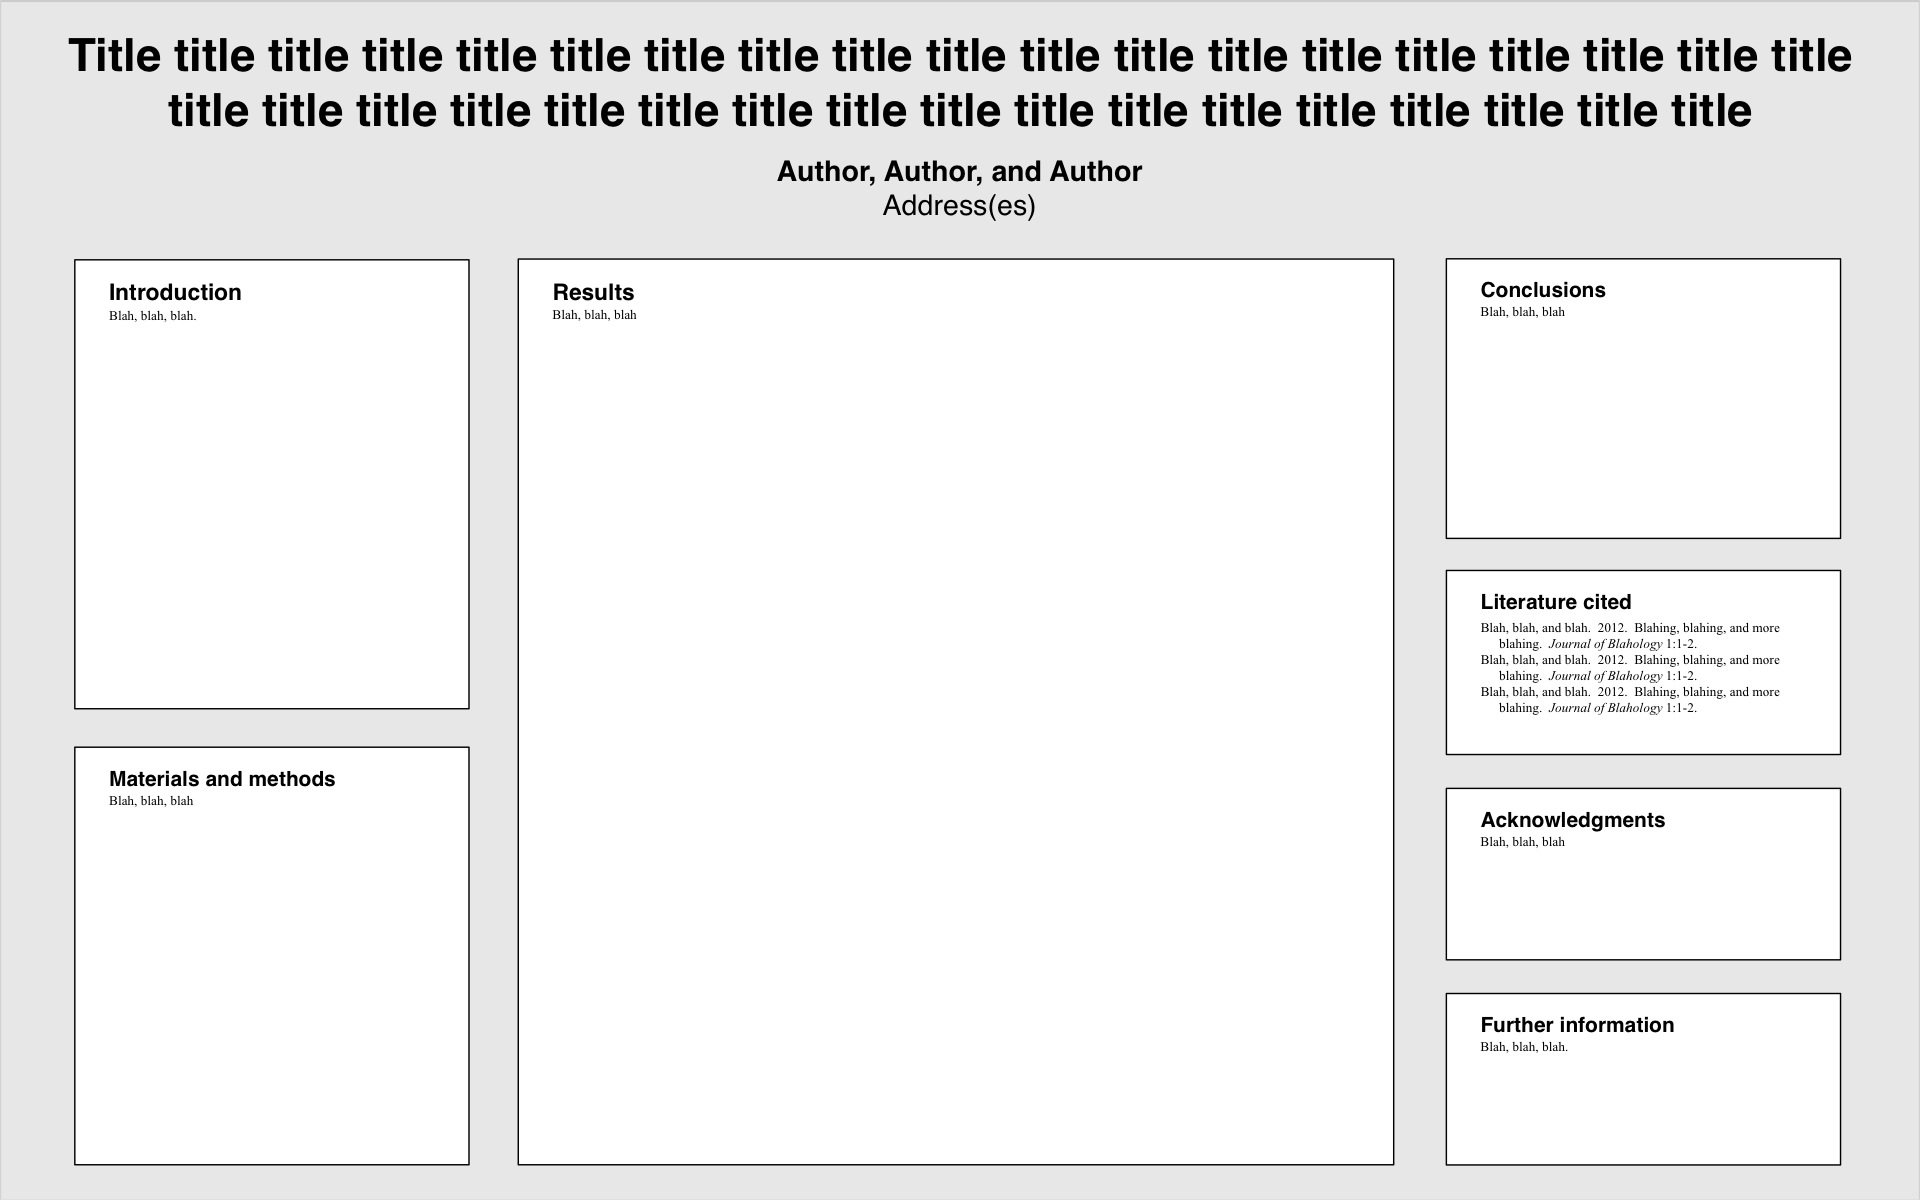 templates for conference posters - colin purrington, Powerpoint templates